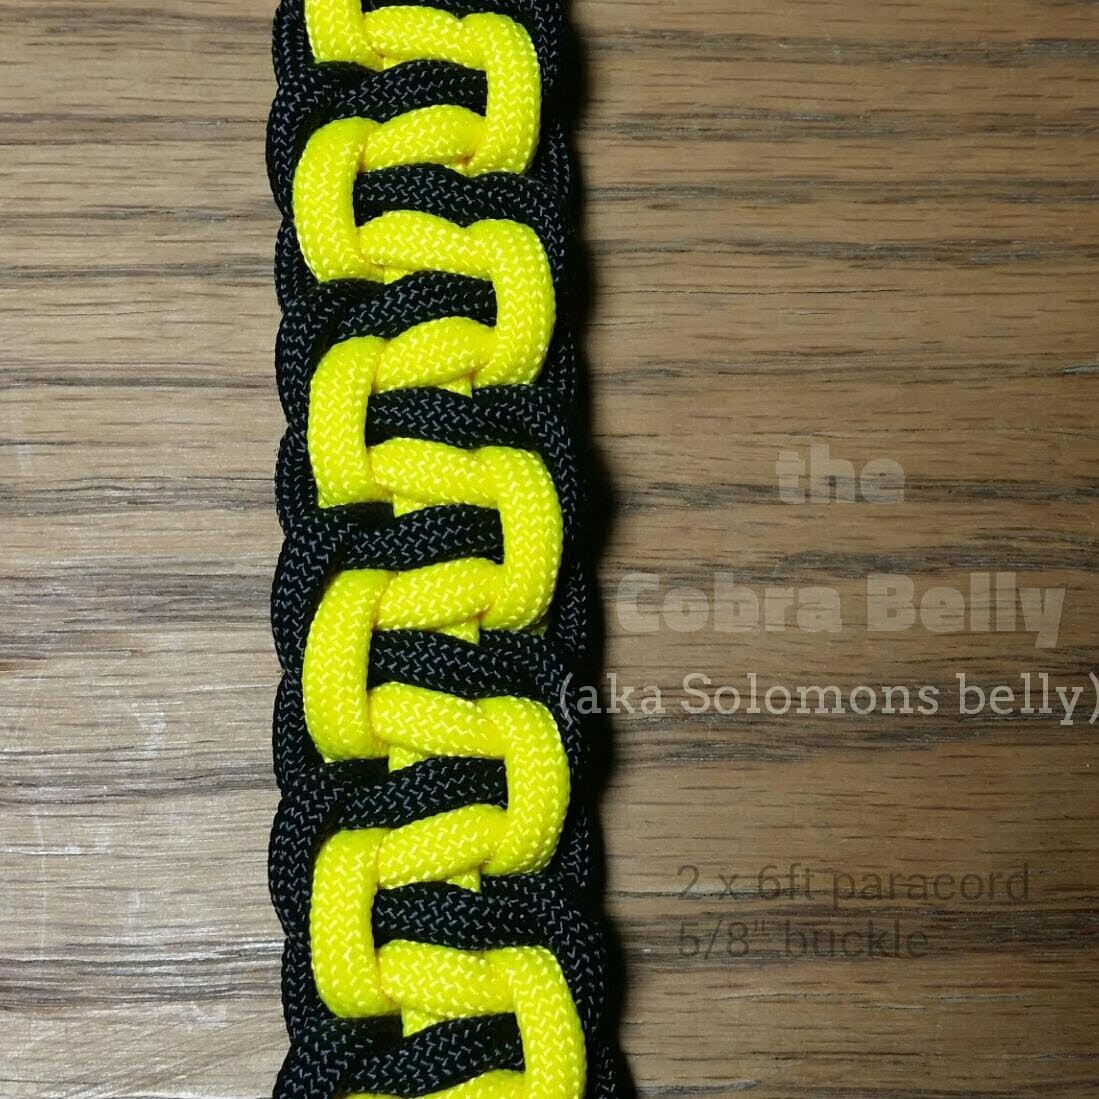 How to make the Cobra Belly Paracord Bracelet by gianoneil